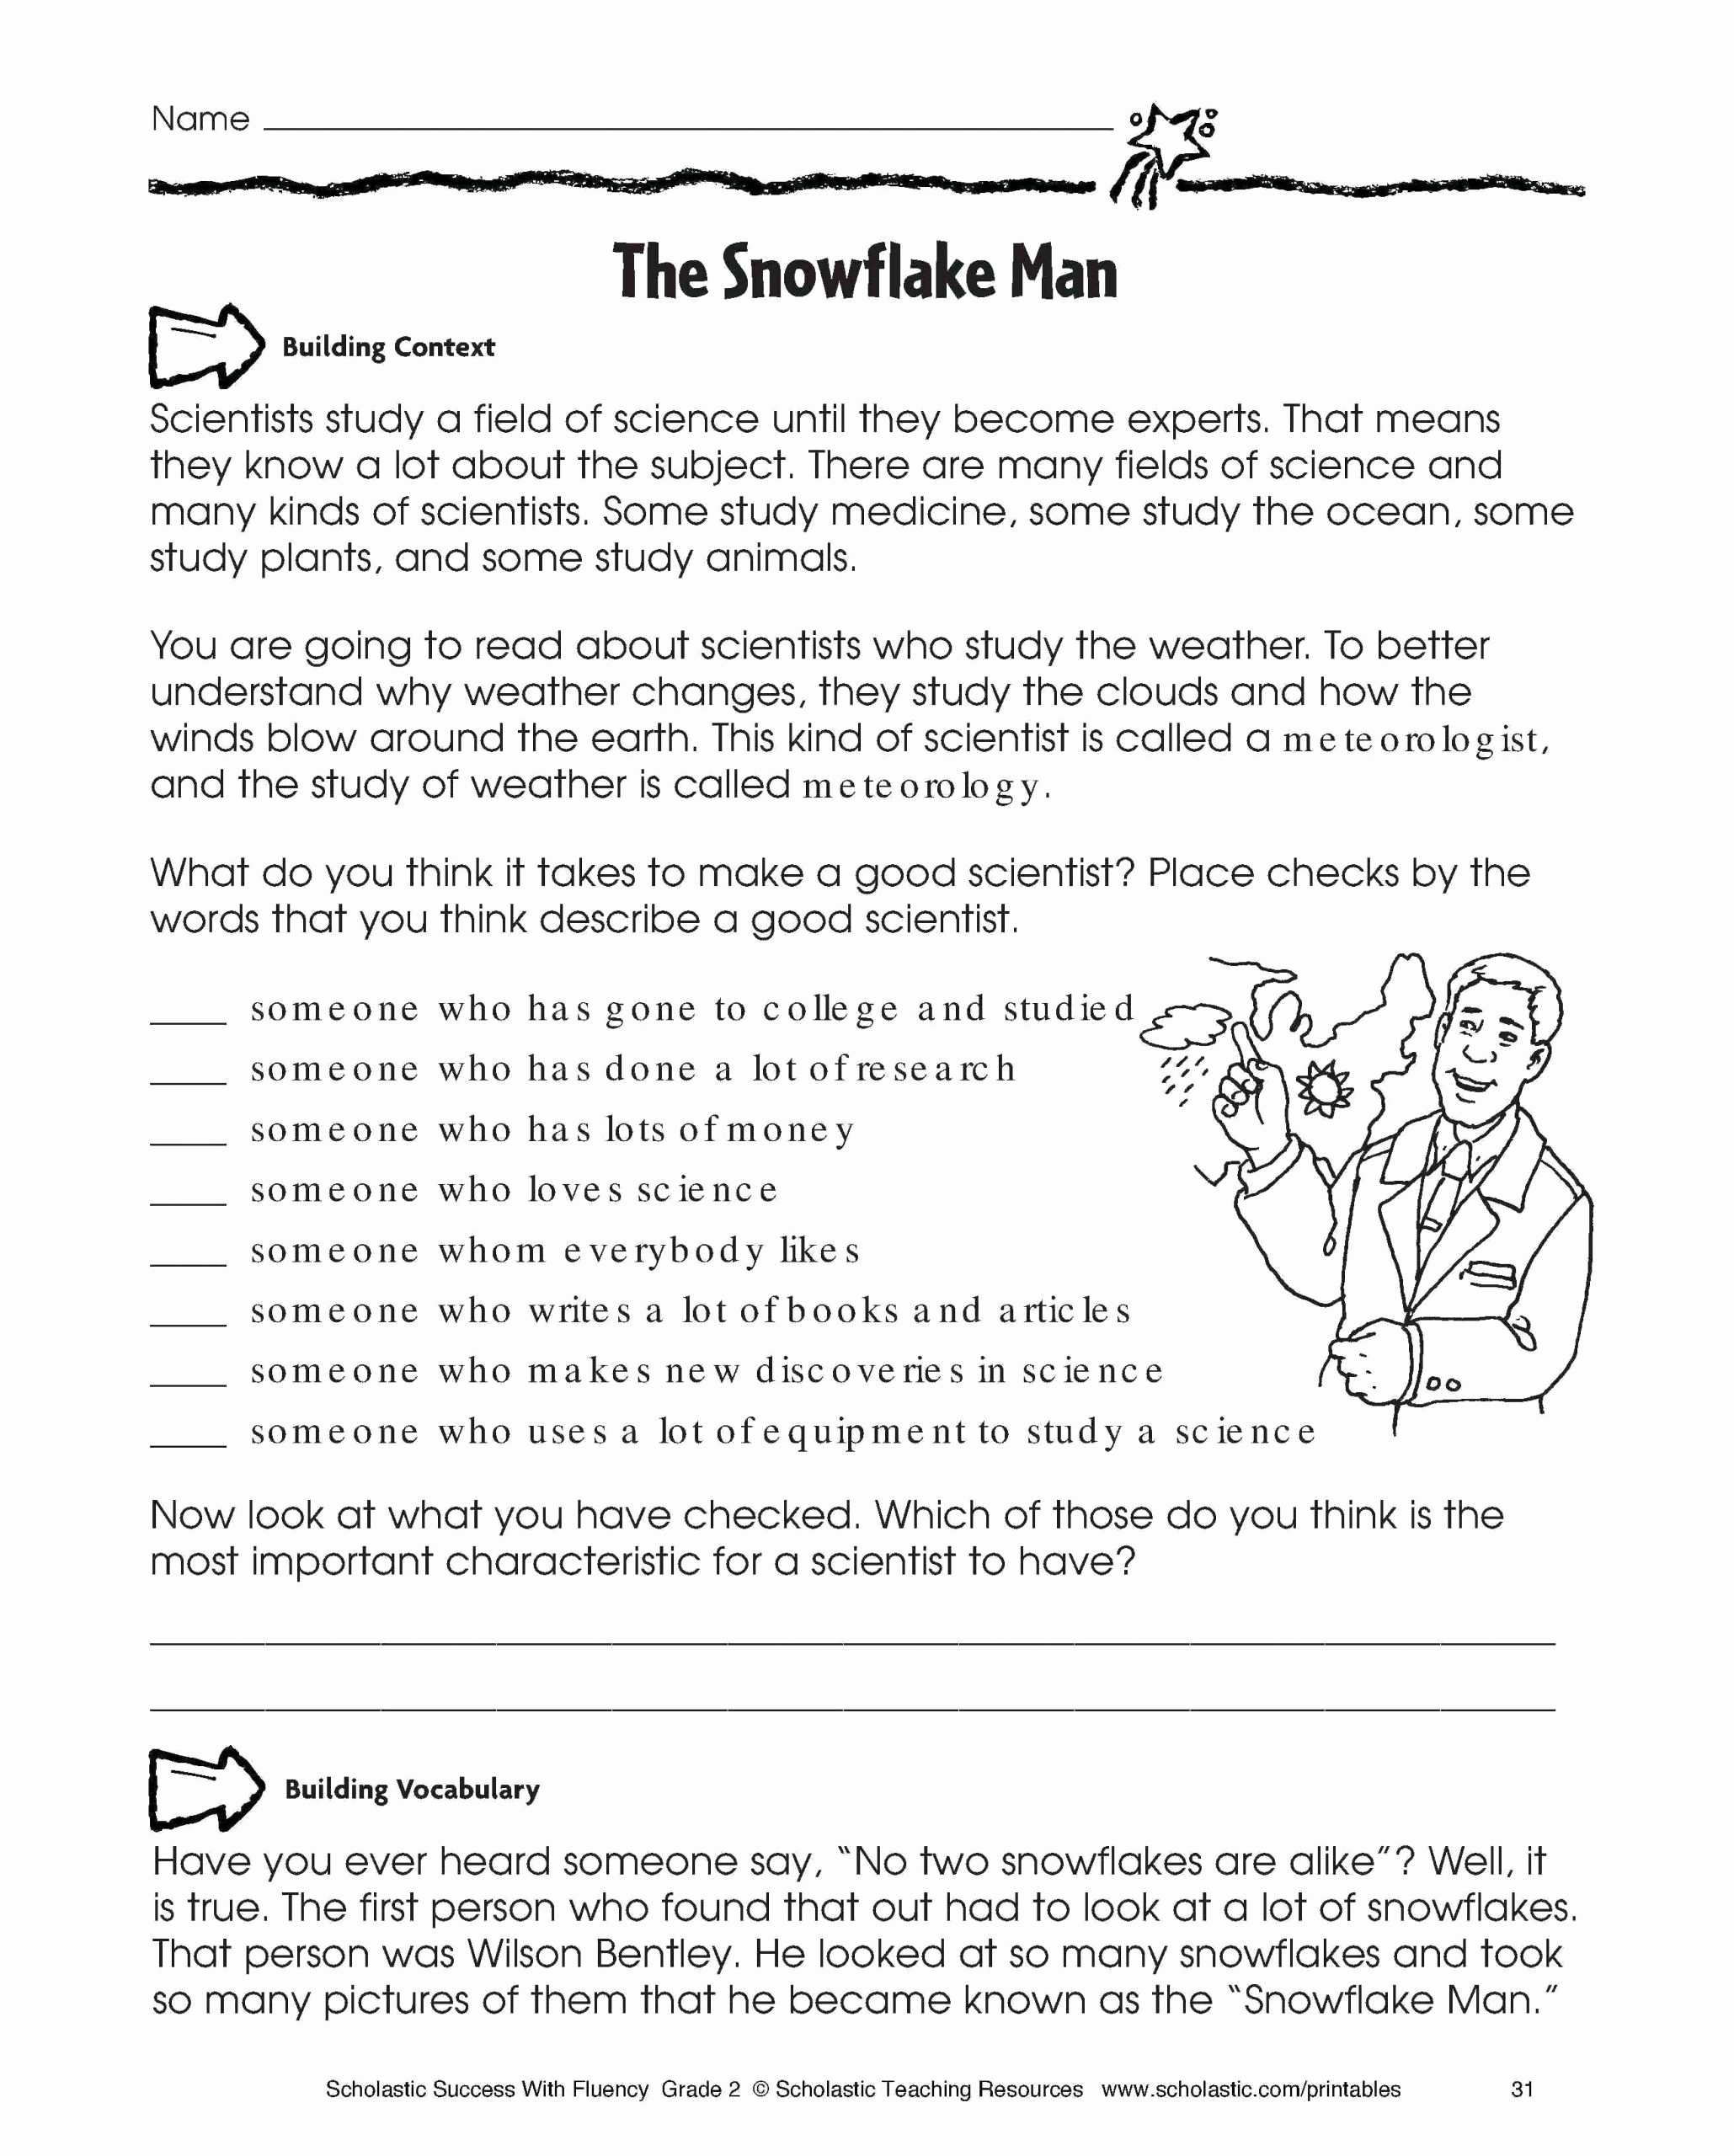 Making Inferences Worksheet 4th Grade Awesome 20 Inference Worksheets 4th Grade